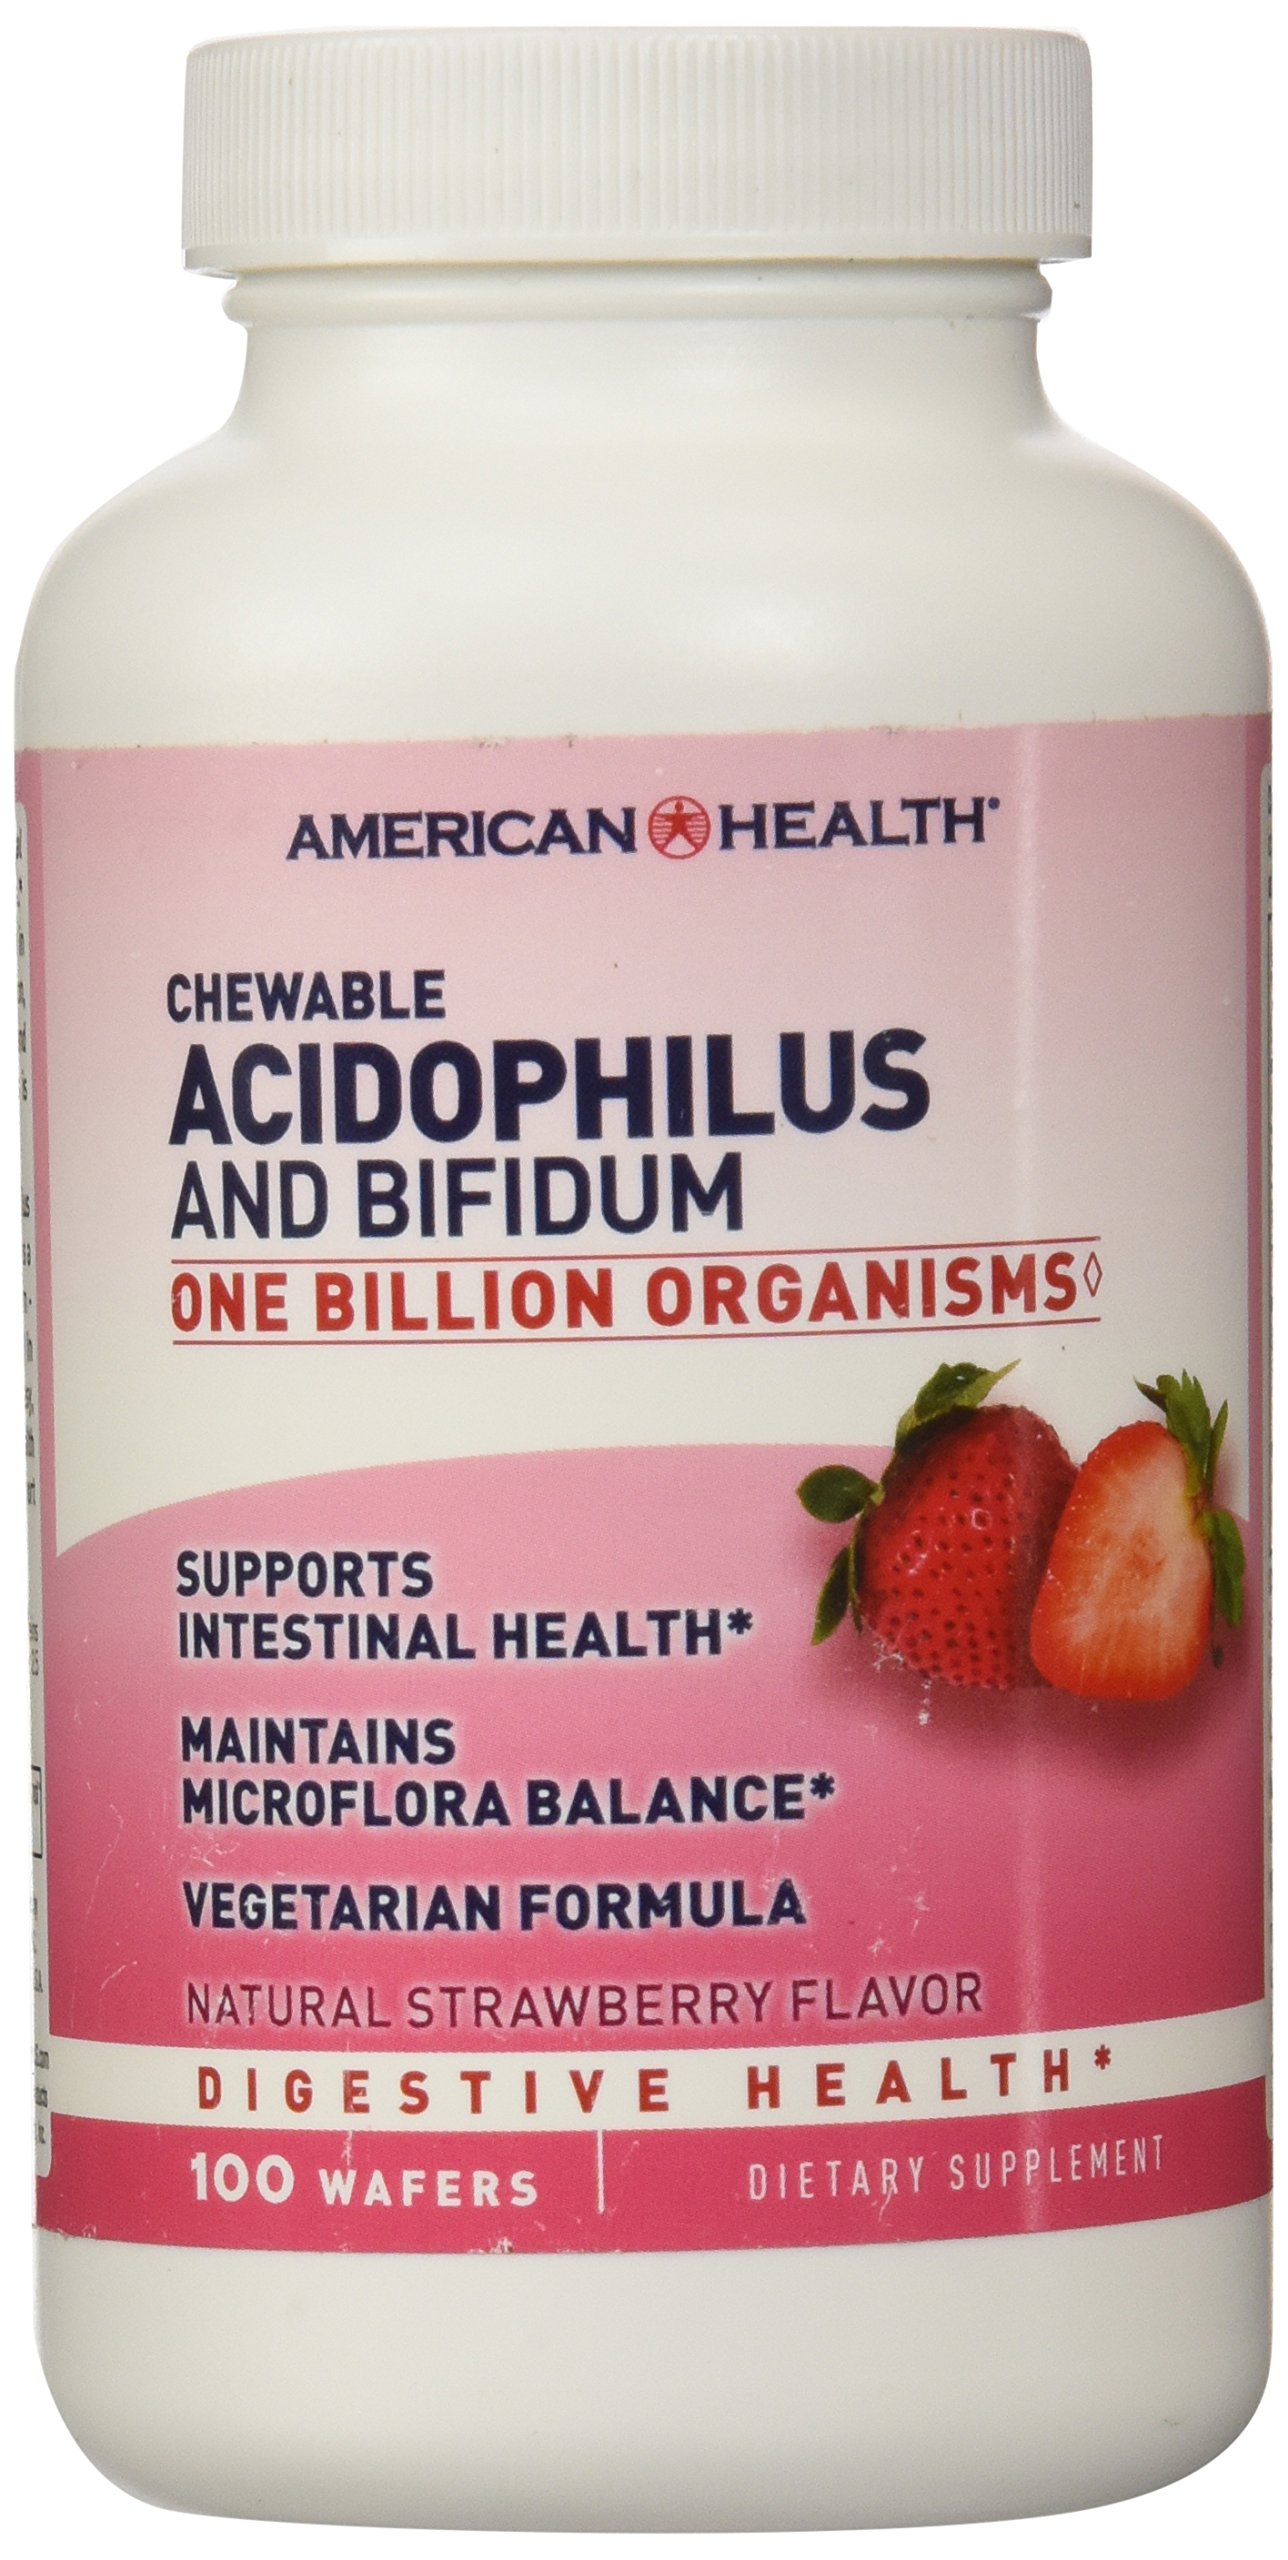 American Health Acidophilus and Bifidum Chewable Strawberry 100 Wafers